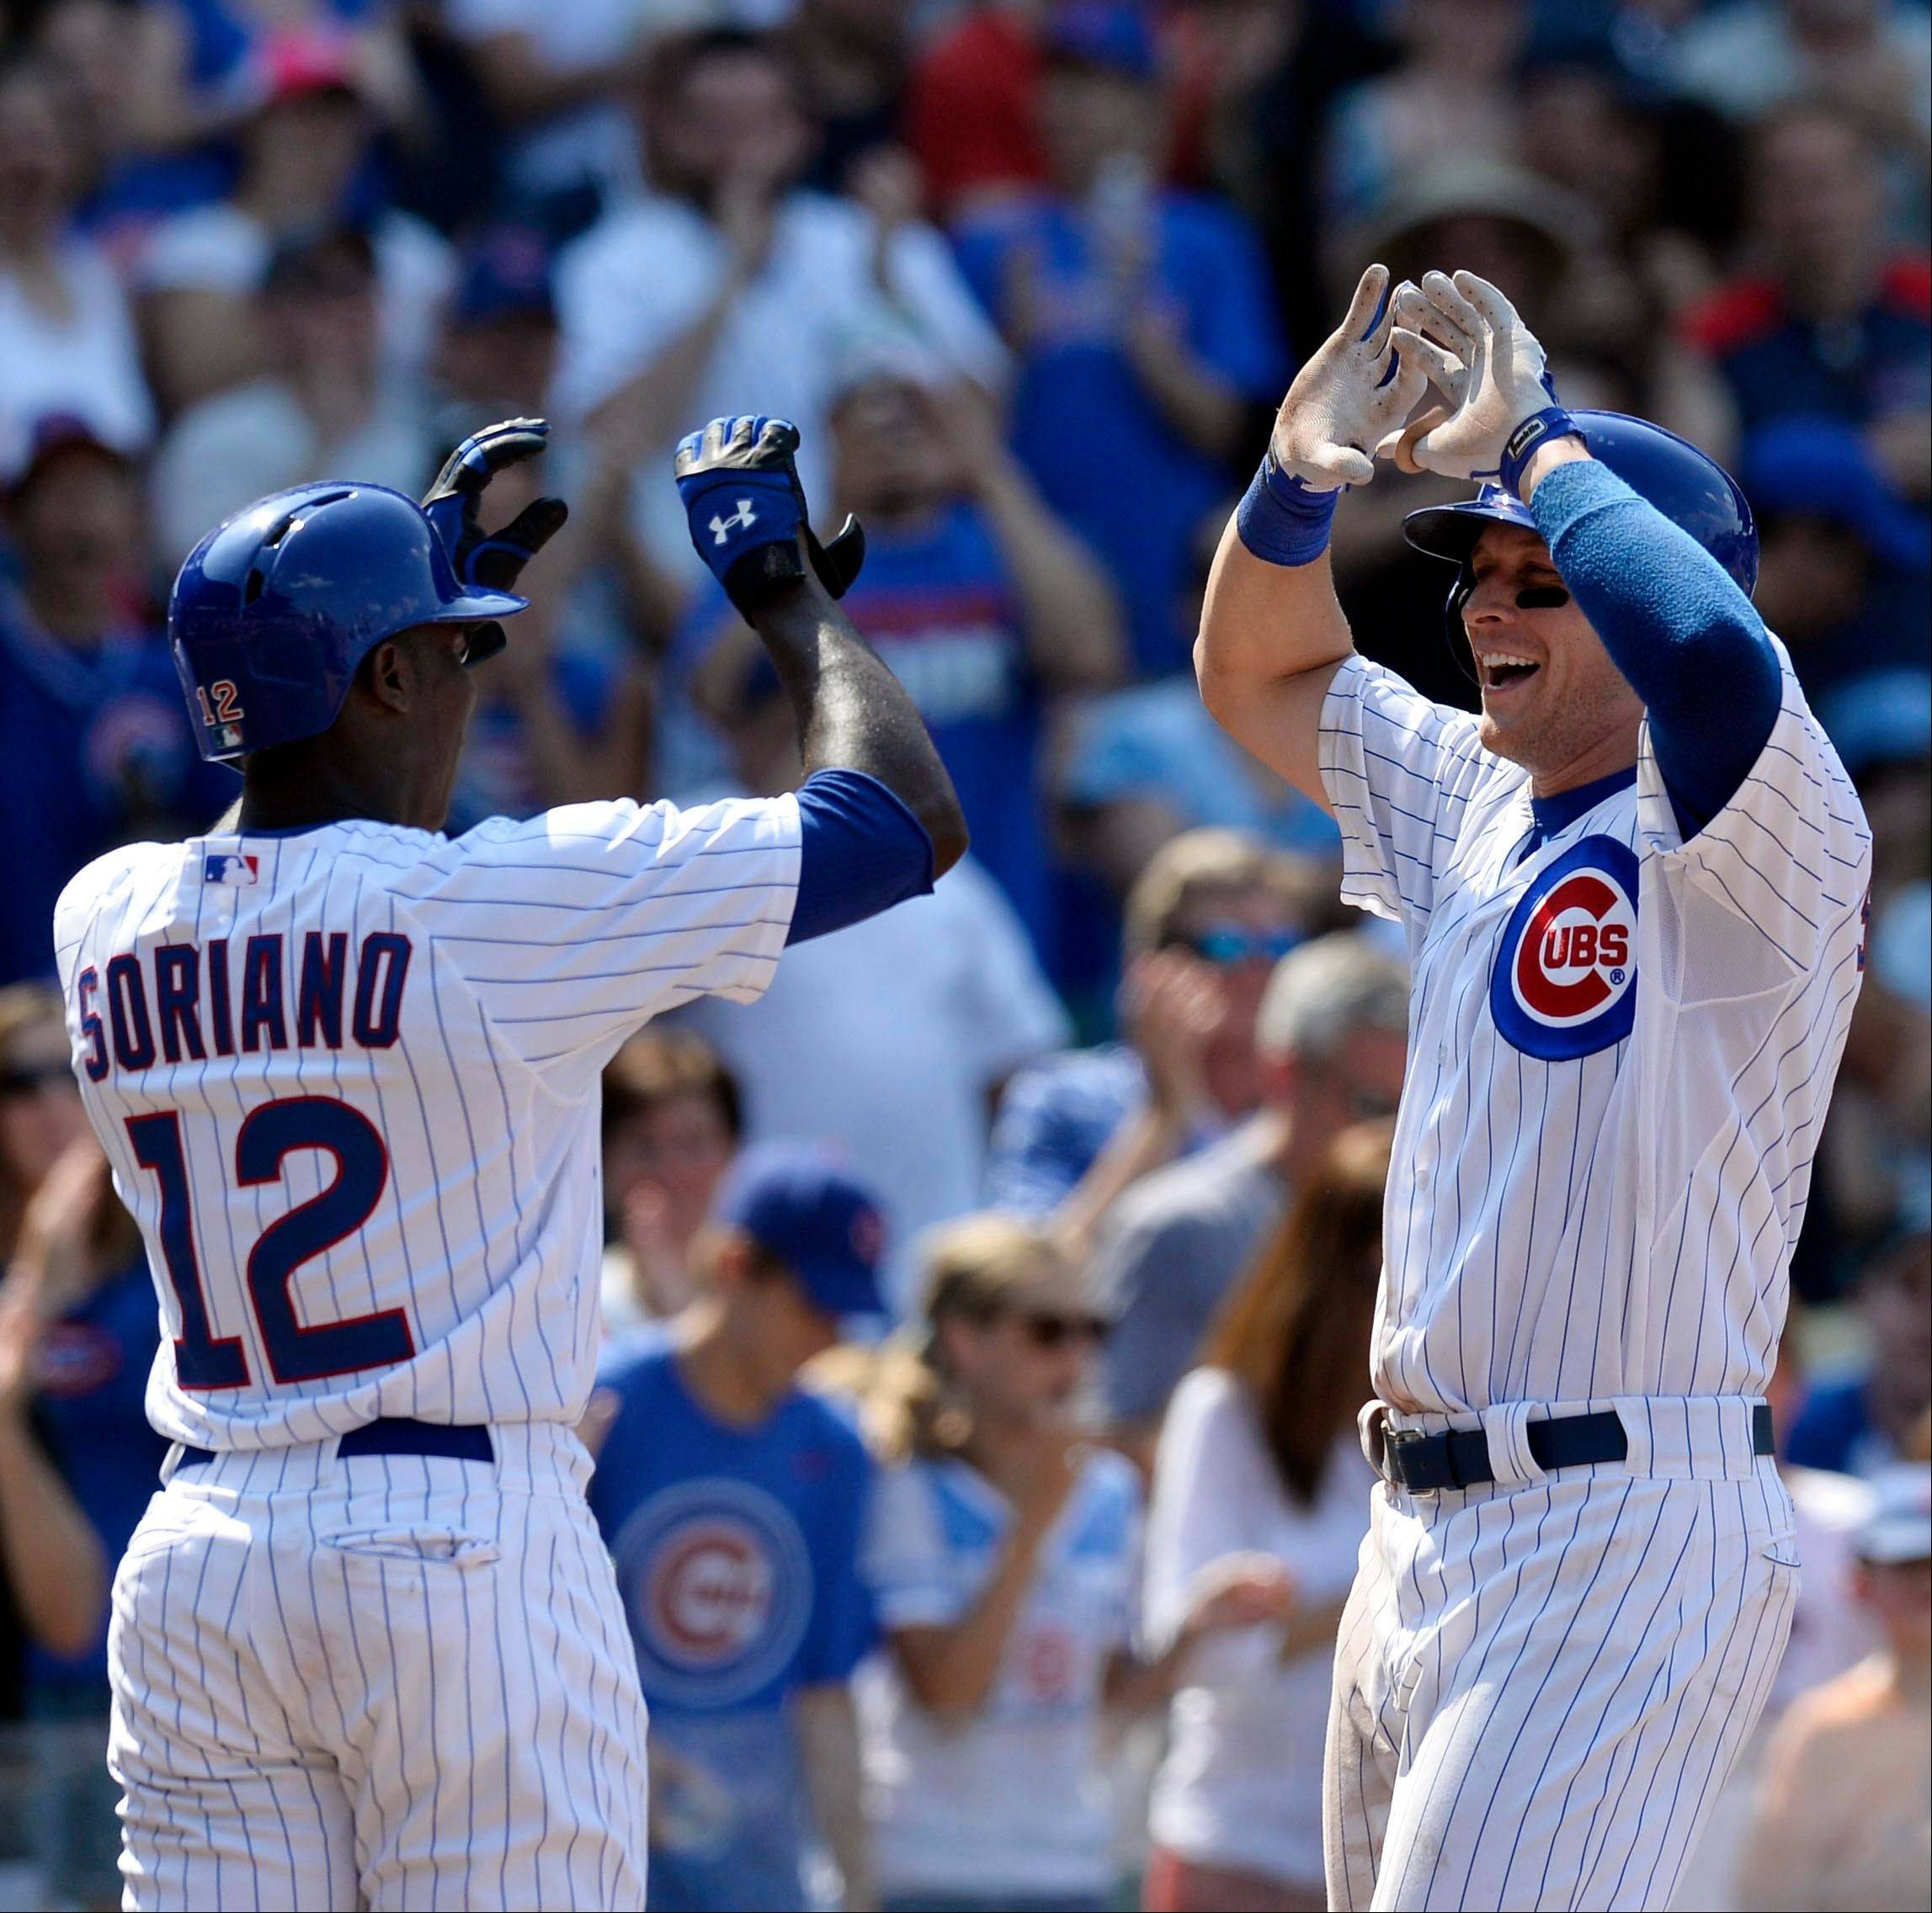 Alfonso Soriano greets Ryan Sweeney at home plate after Sweeney�s 3-run homer in the seventh inning Sunday at Wrigley Field. Sweeney finished with a career-high 6 RBI in the Cubs� 14-6 victory over Houston.